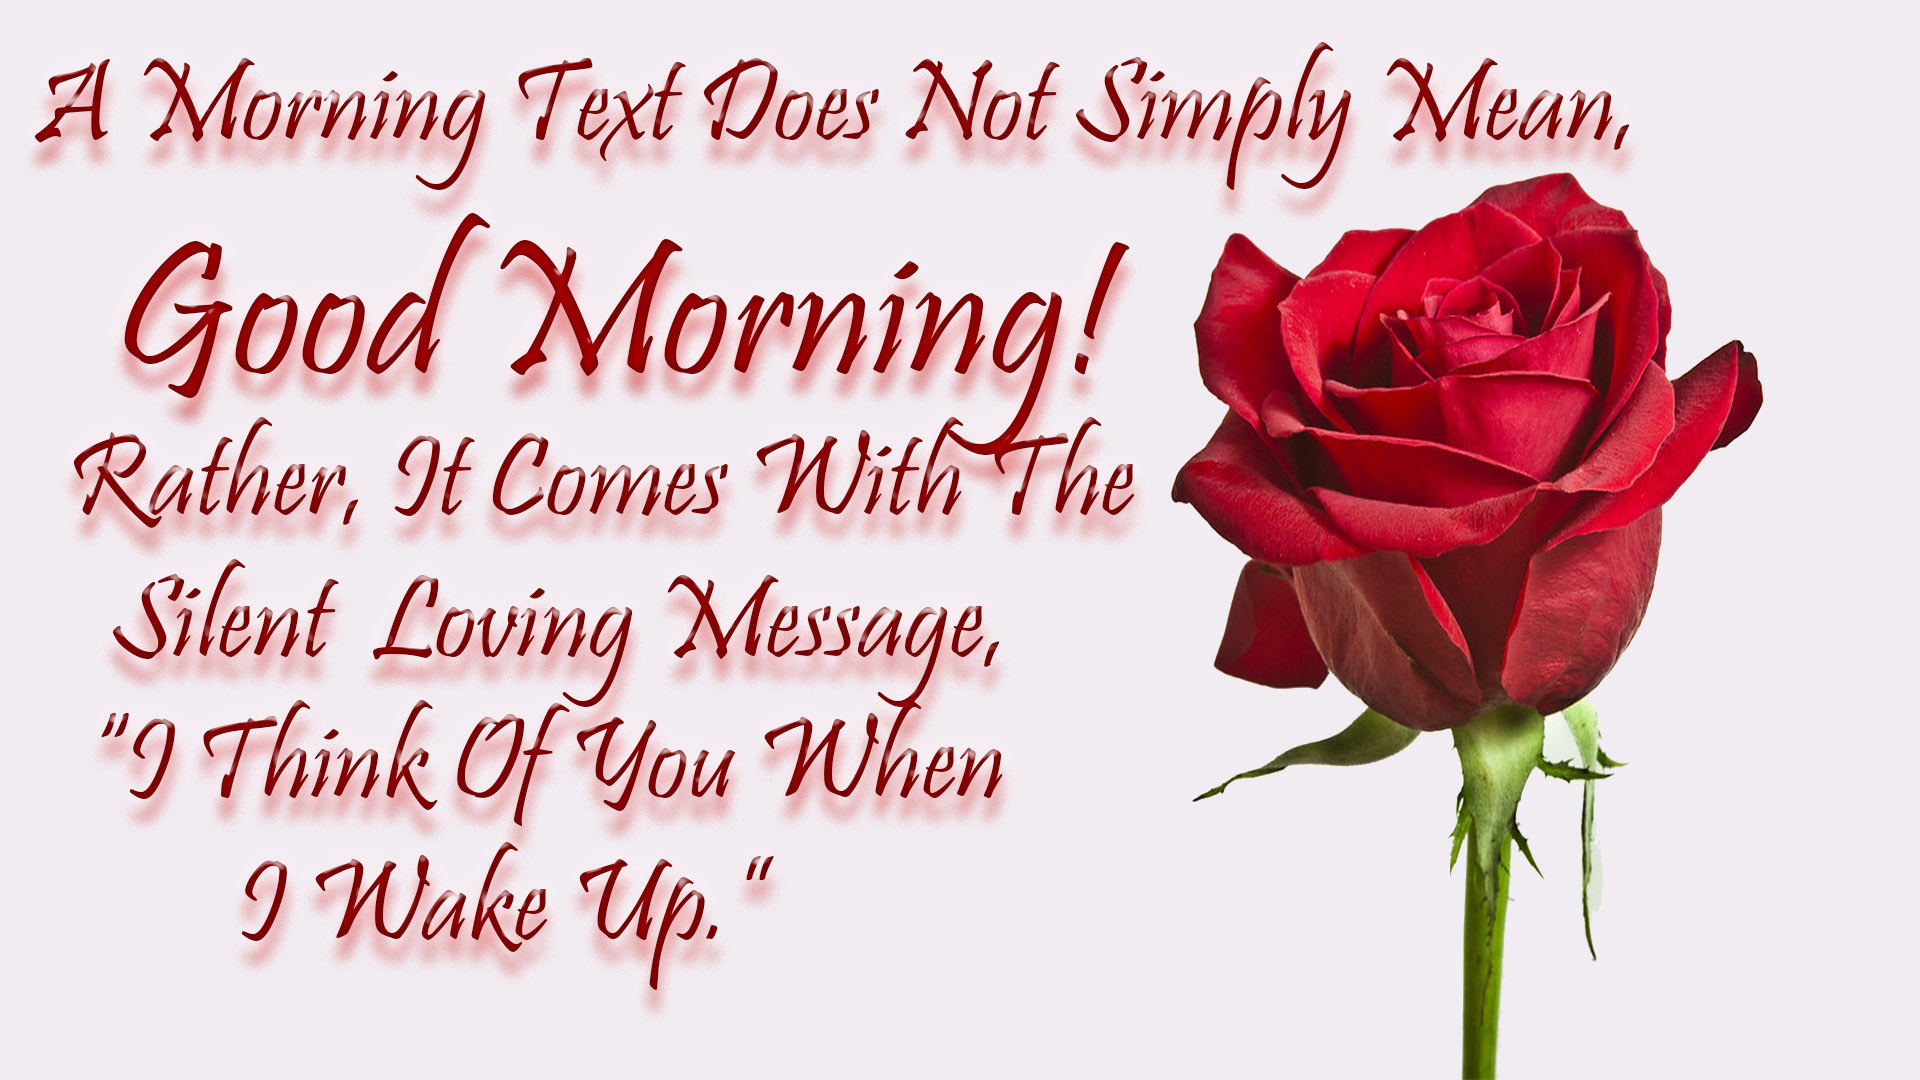 Good Morning Wishes Greetings Messages Images 2018